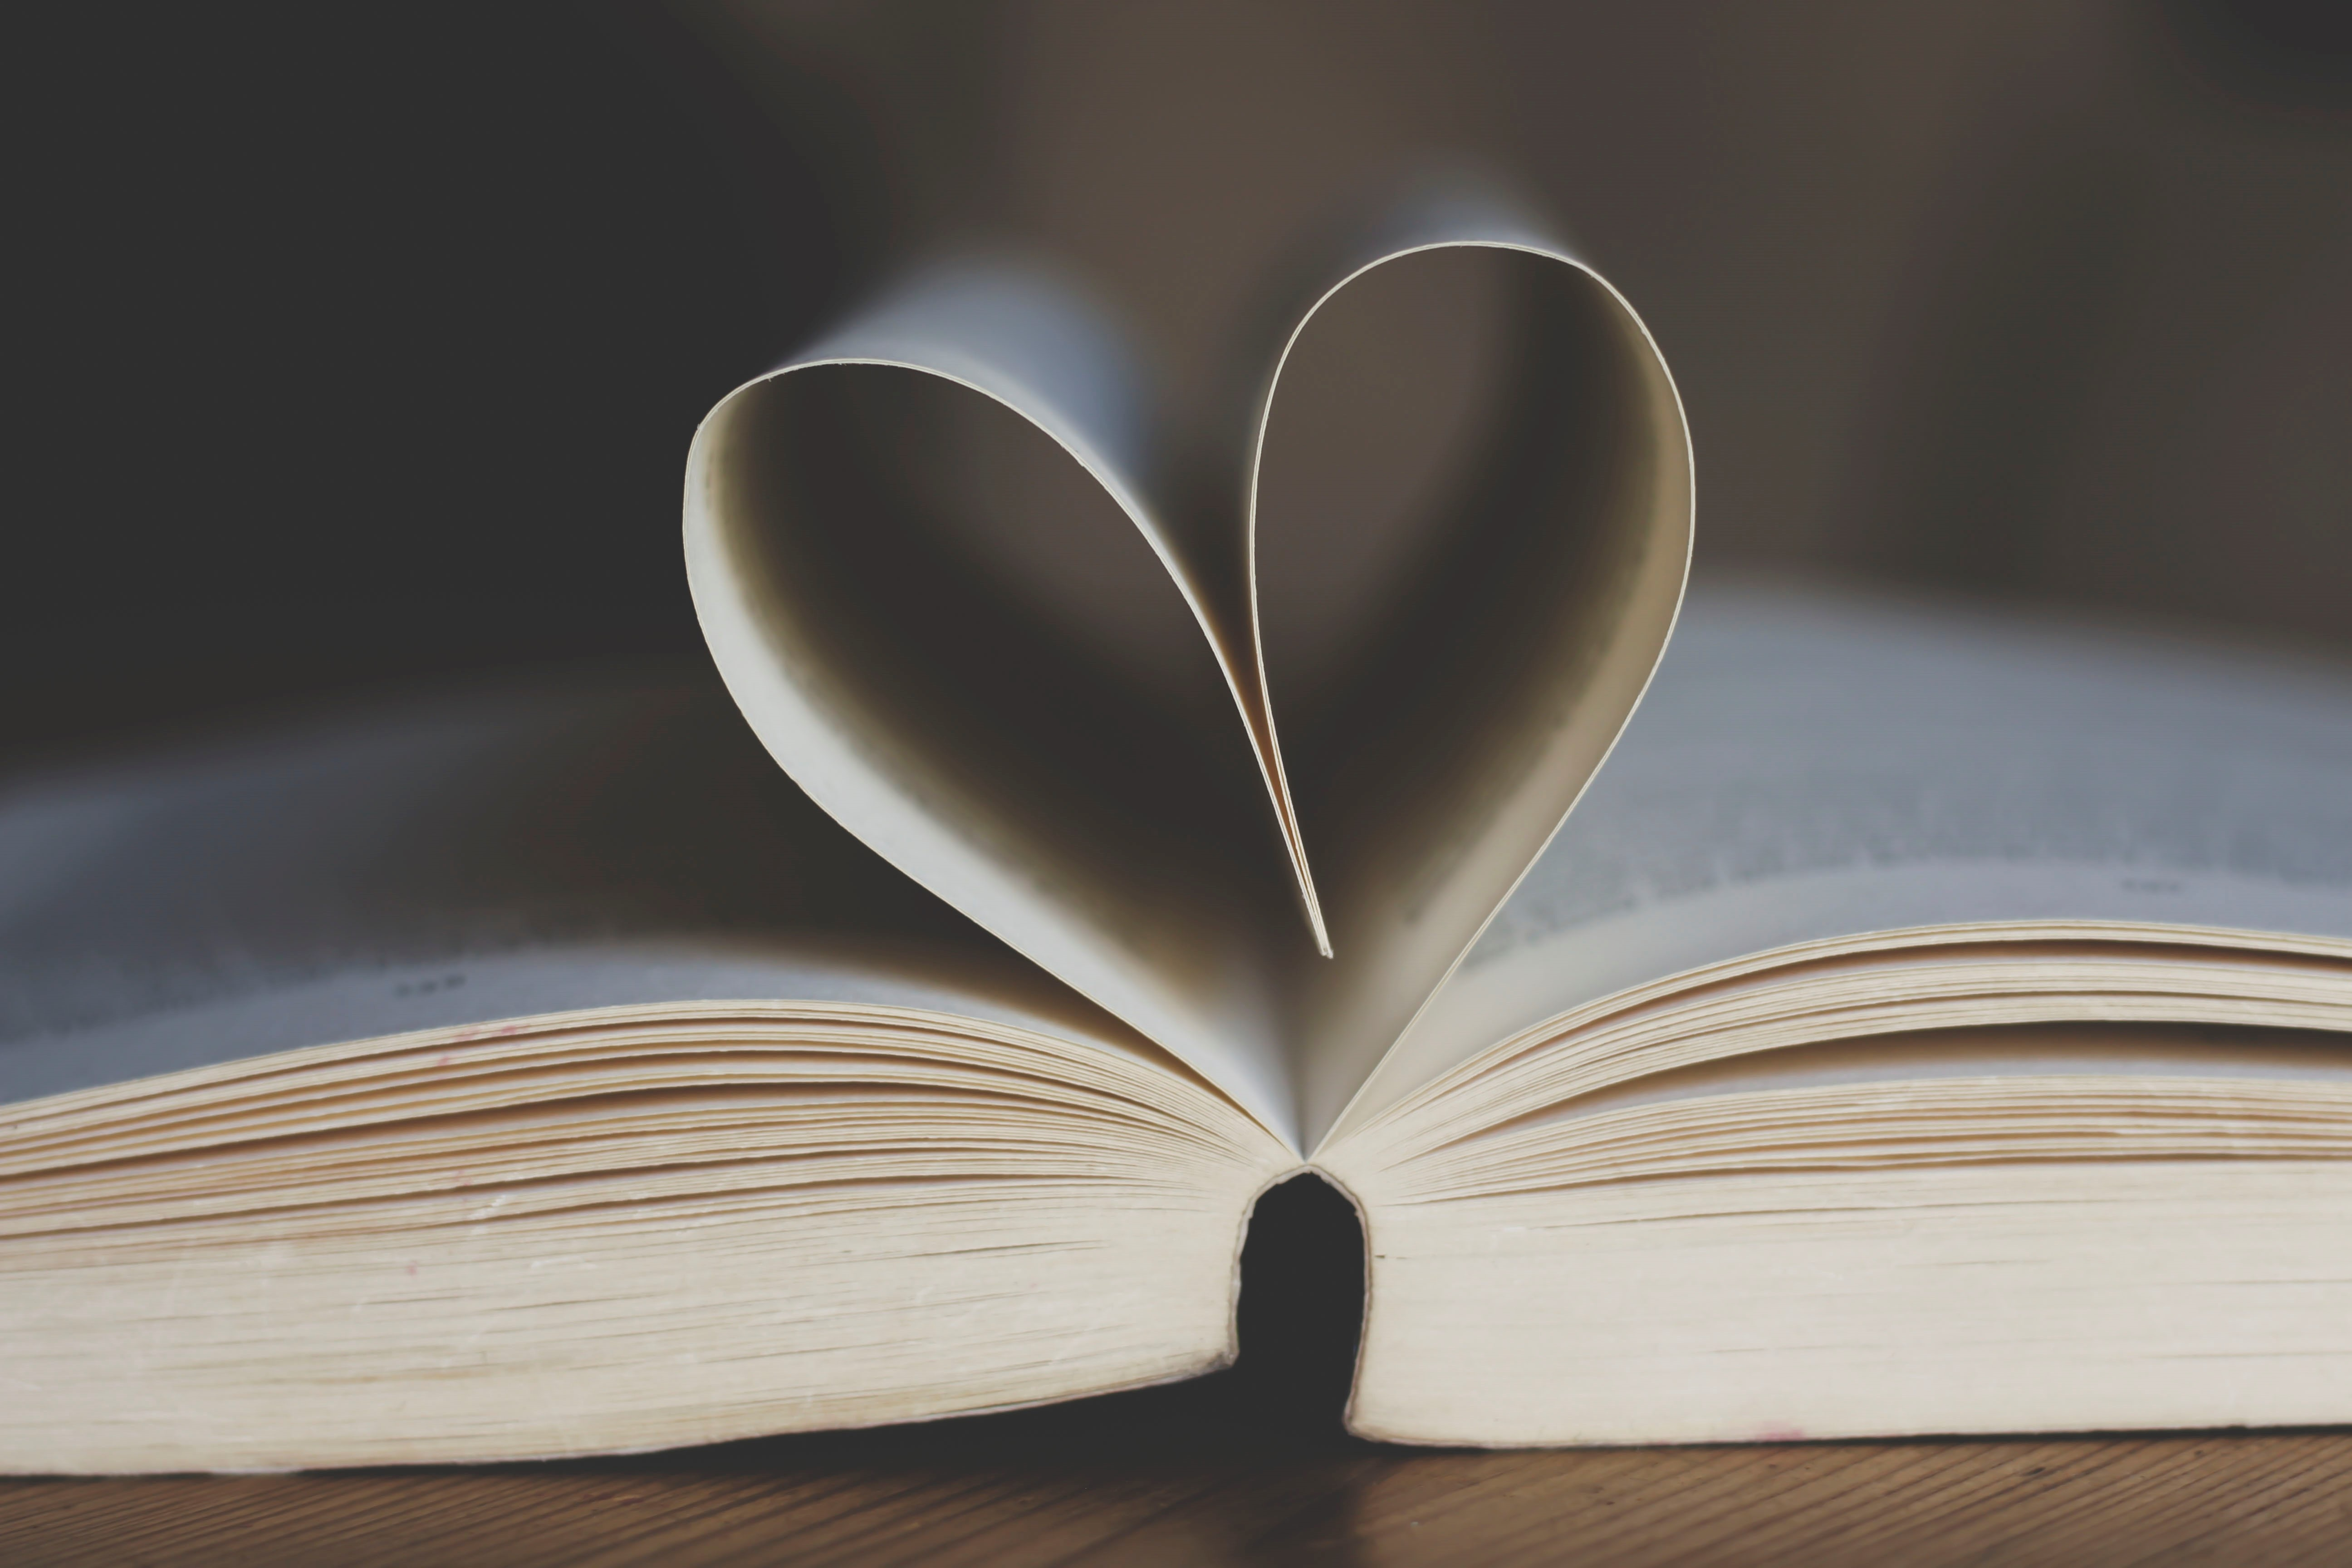 Close up view of an open book. The top pages are bent round in a heart shape.